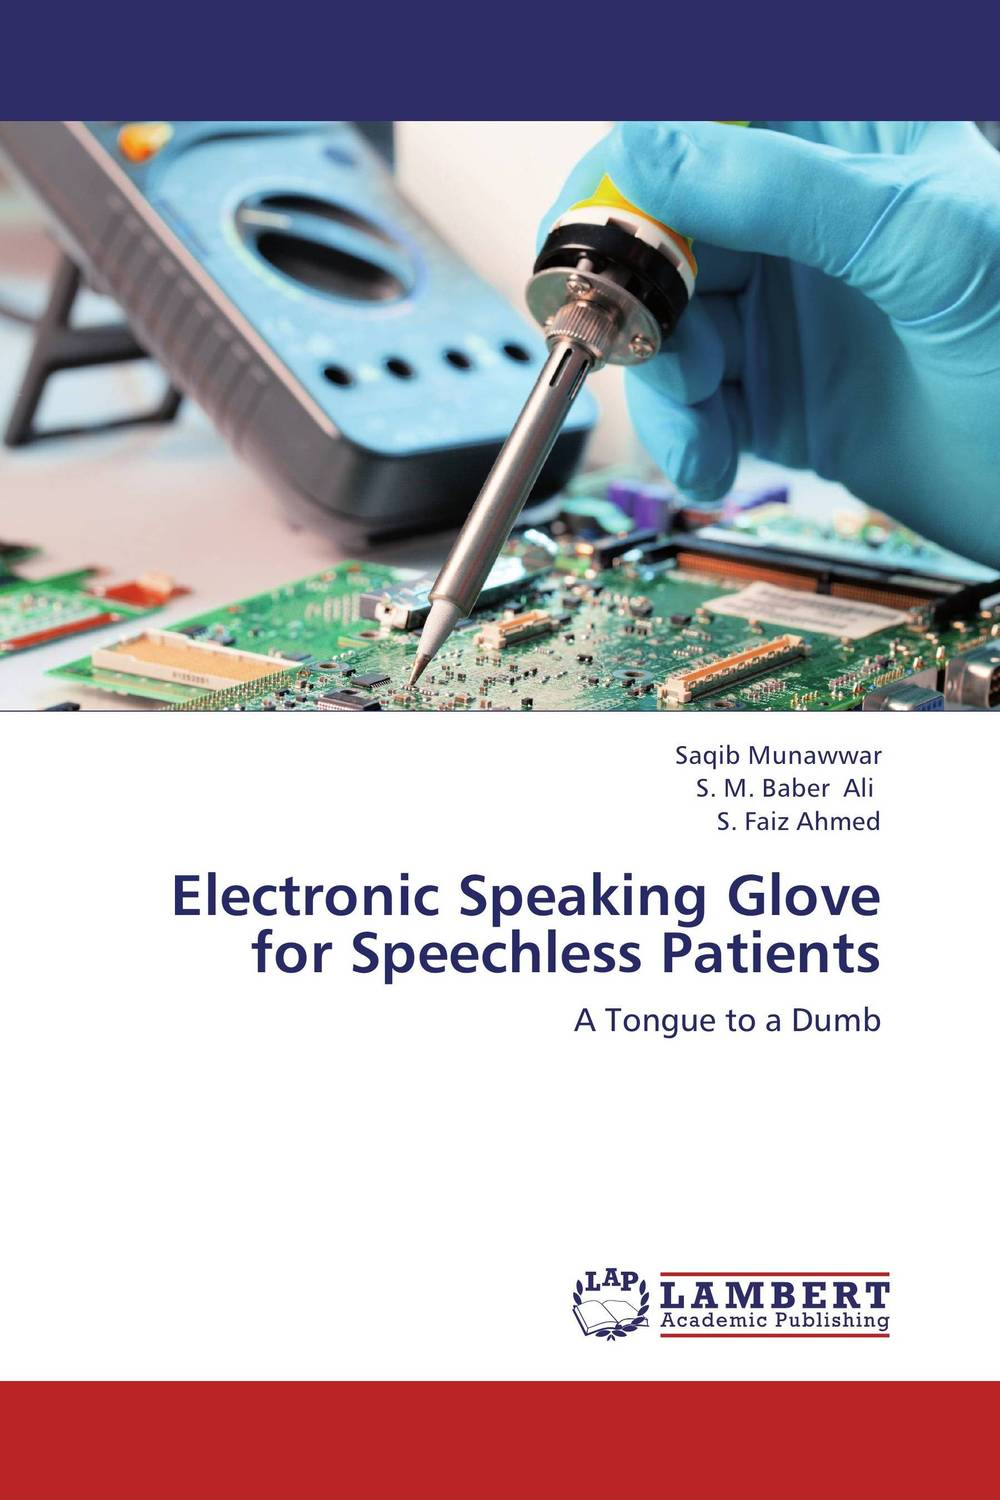 Electronic Speaking Glove for Speechless Patients seduced by death – doctors patients